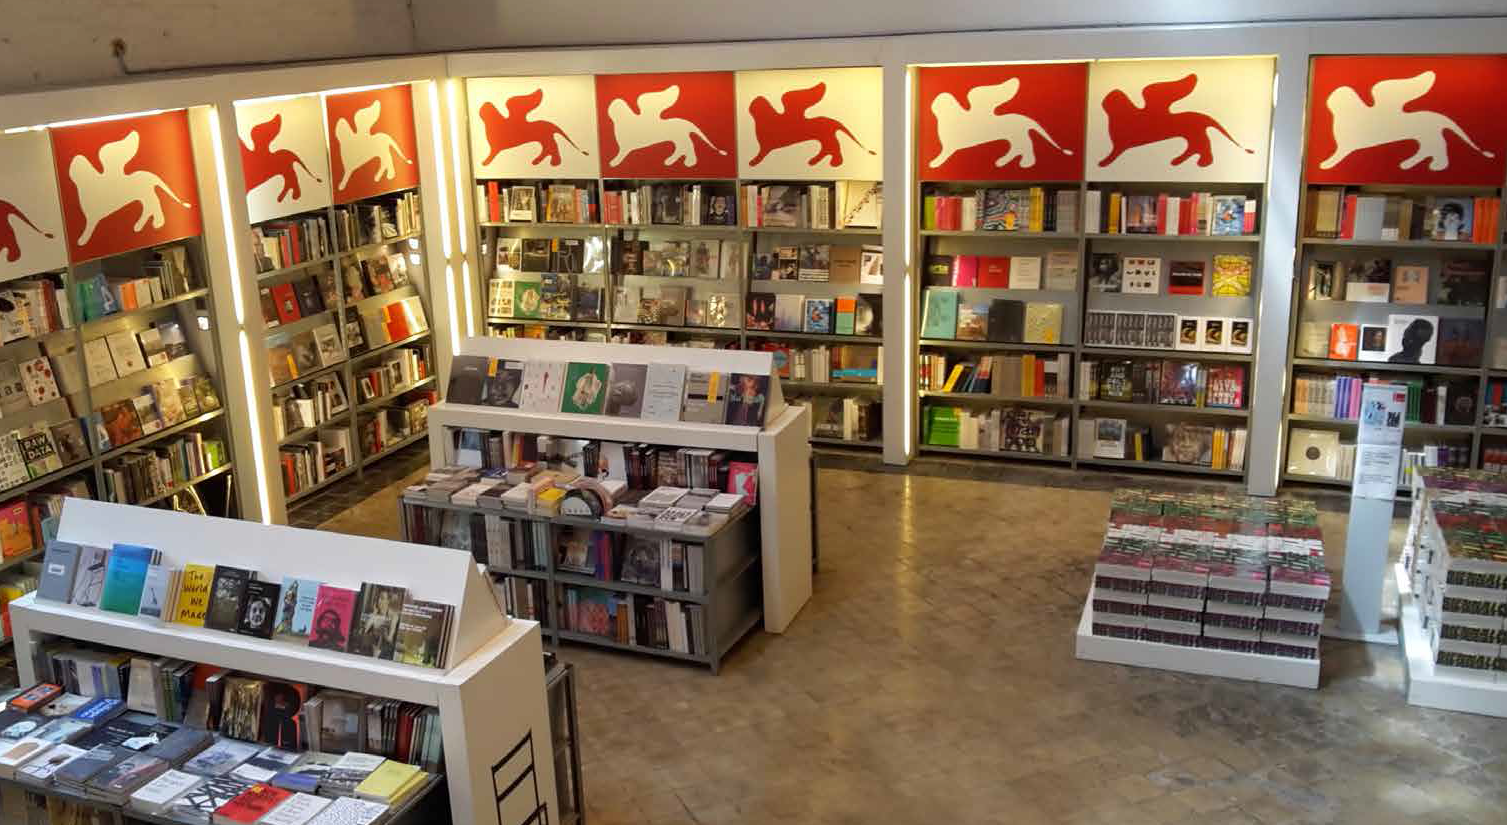 The bookshop of Biennale di Venezia